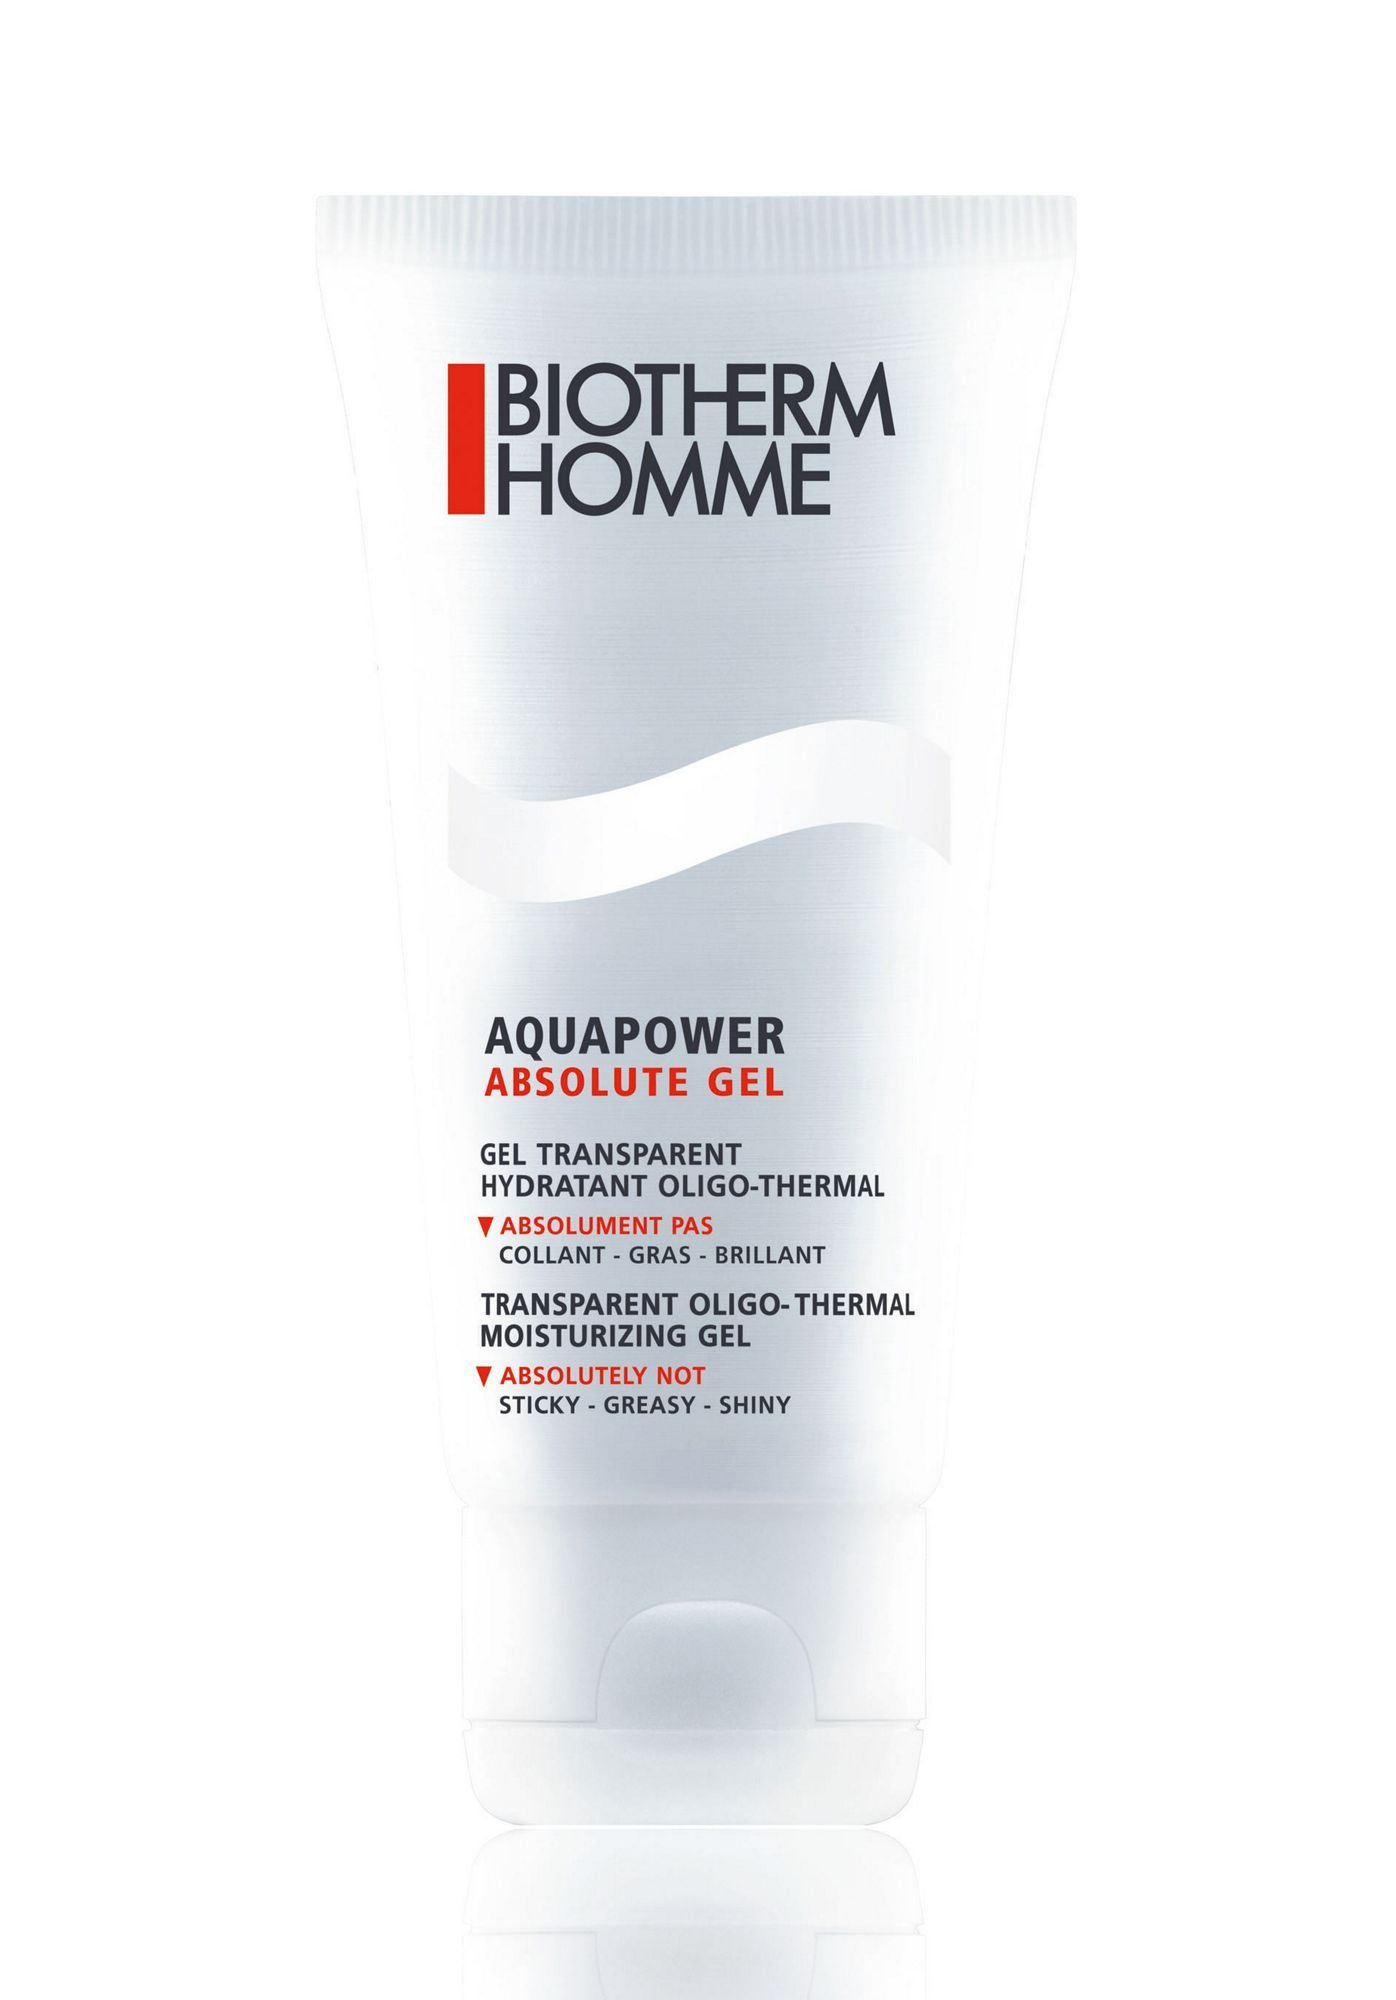 Biotherm Homme Aquapower Cosmetic 100ml  Absolute Gel